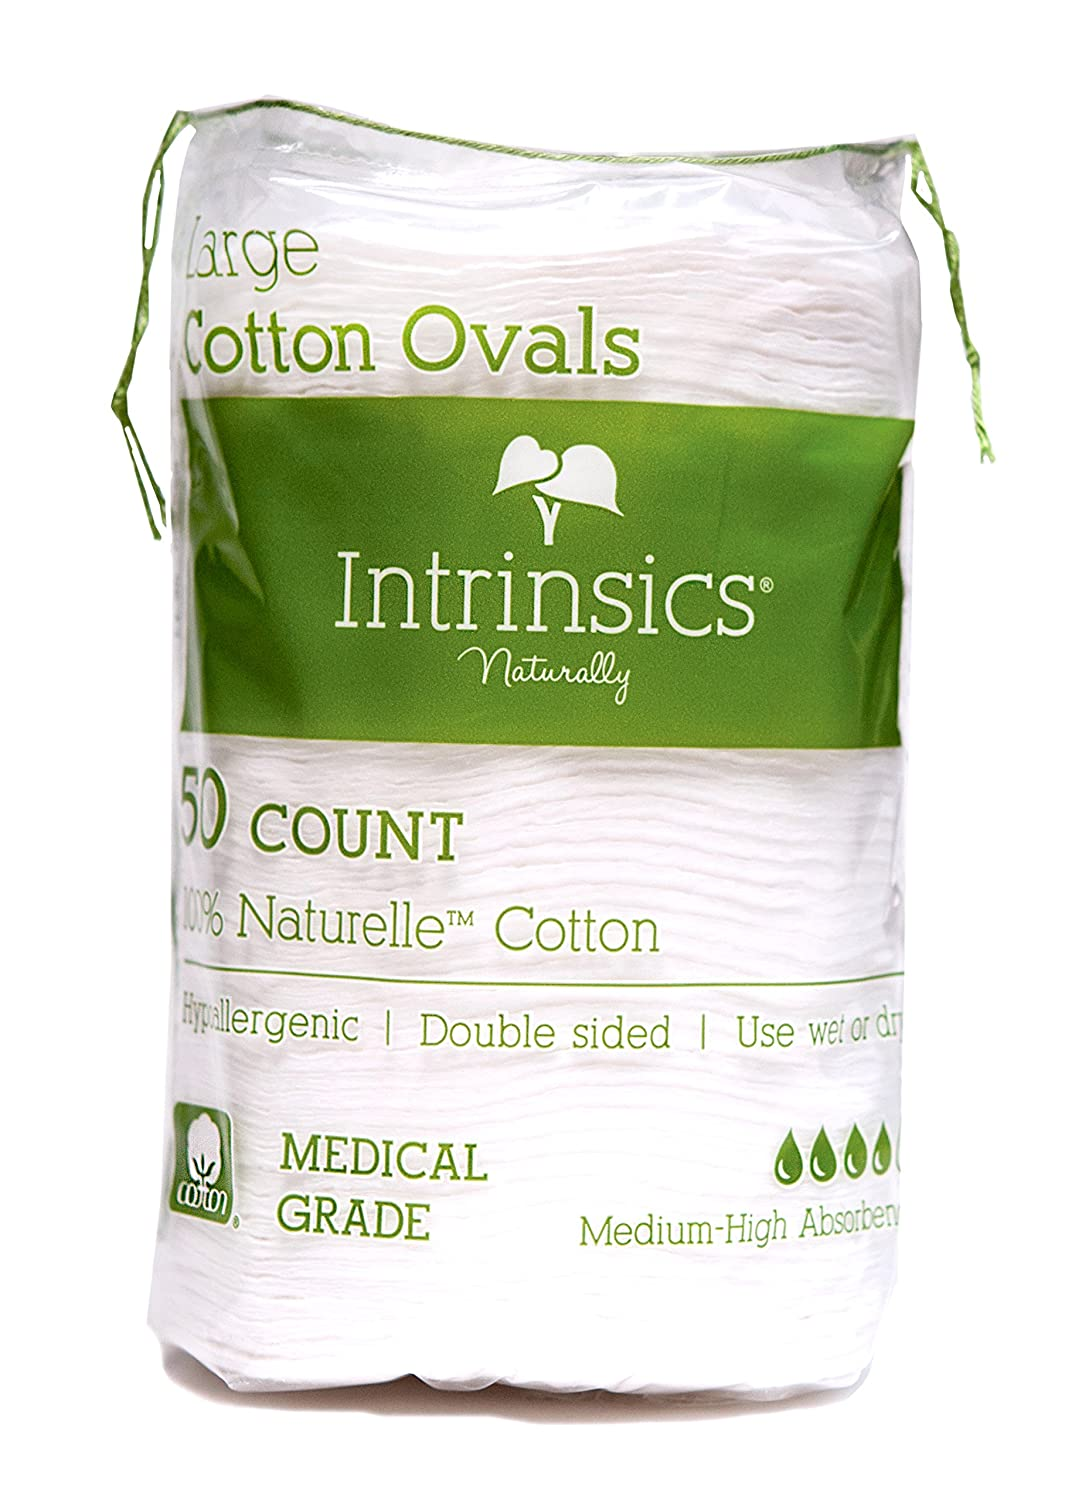 "Intrinsics Large Oval Cotton Pads 3"" - 50 Count"